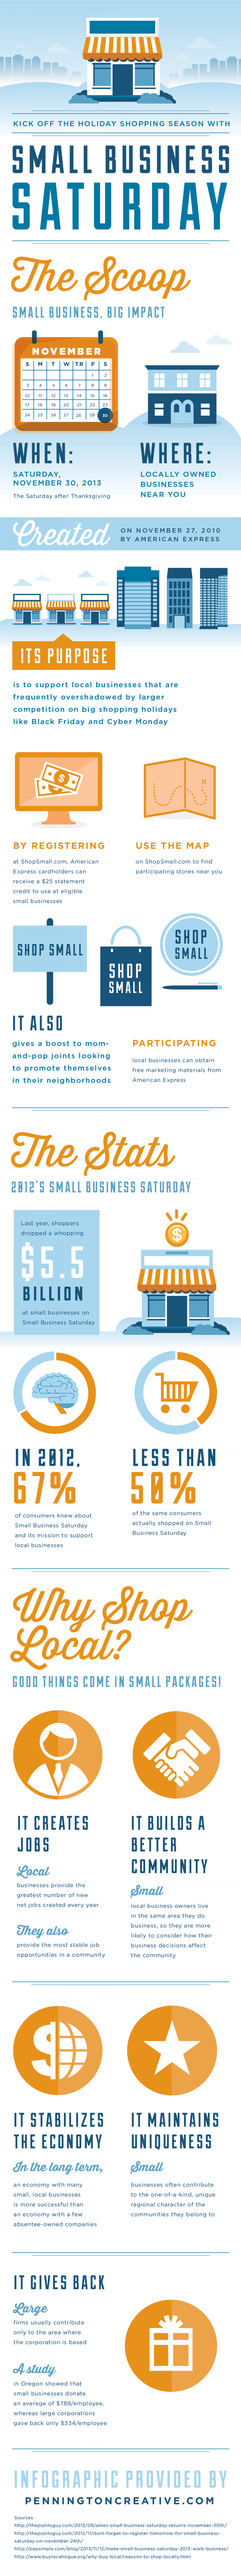 Kick Off the Holiday Shopping Season with Small Business Saturday Infographic